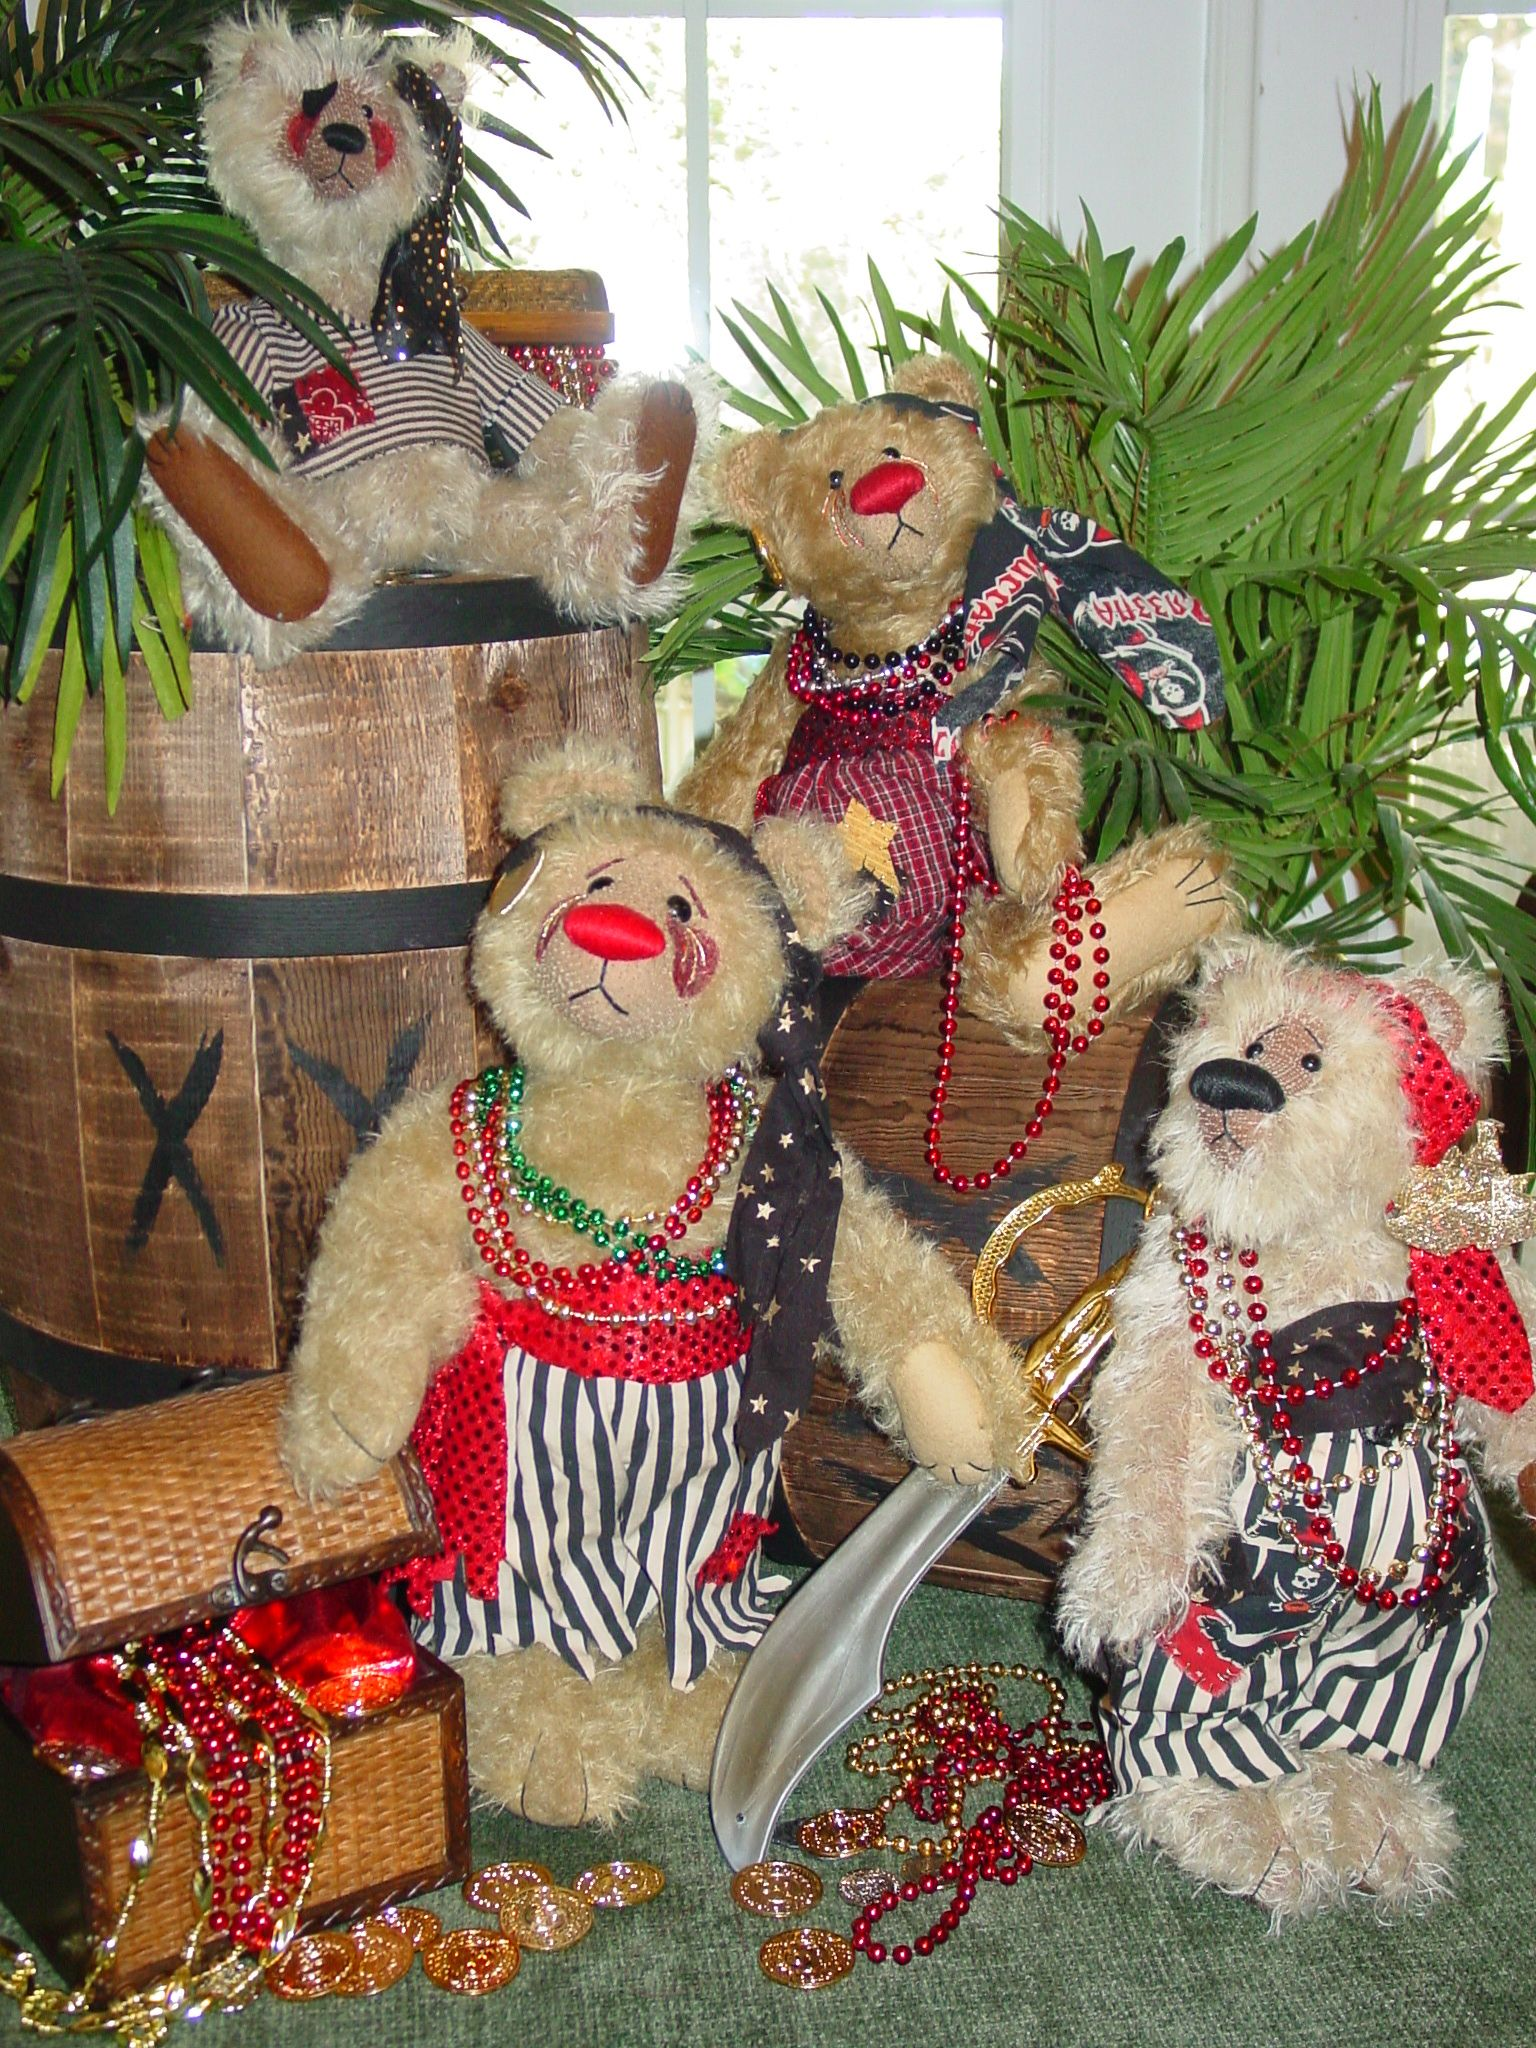 Gaspirilla Pirate Bears Christmas Wreaths Holiday Decor Holiday